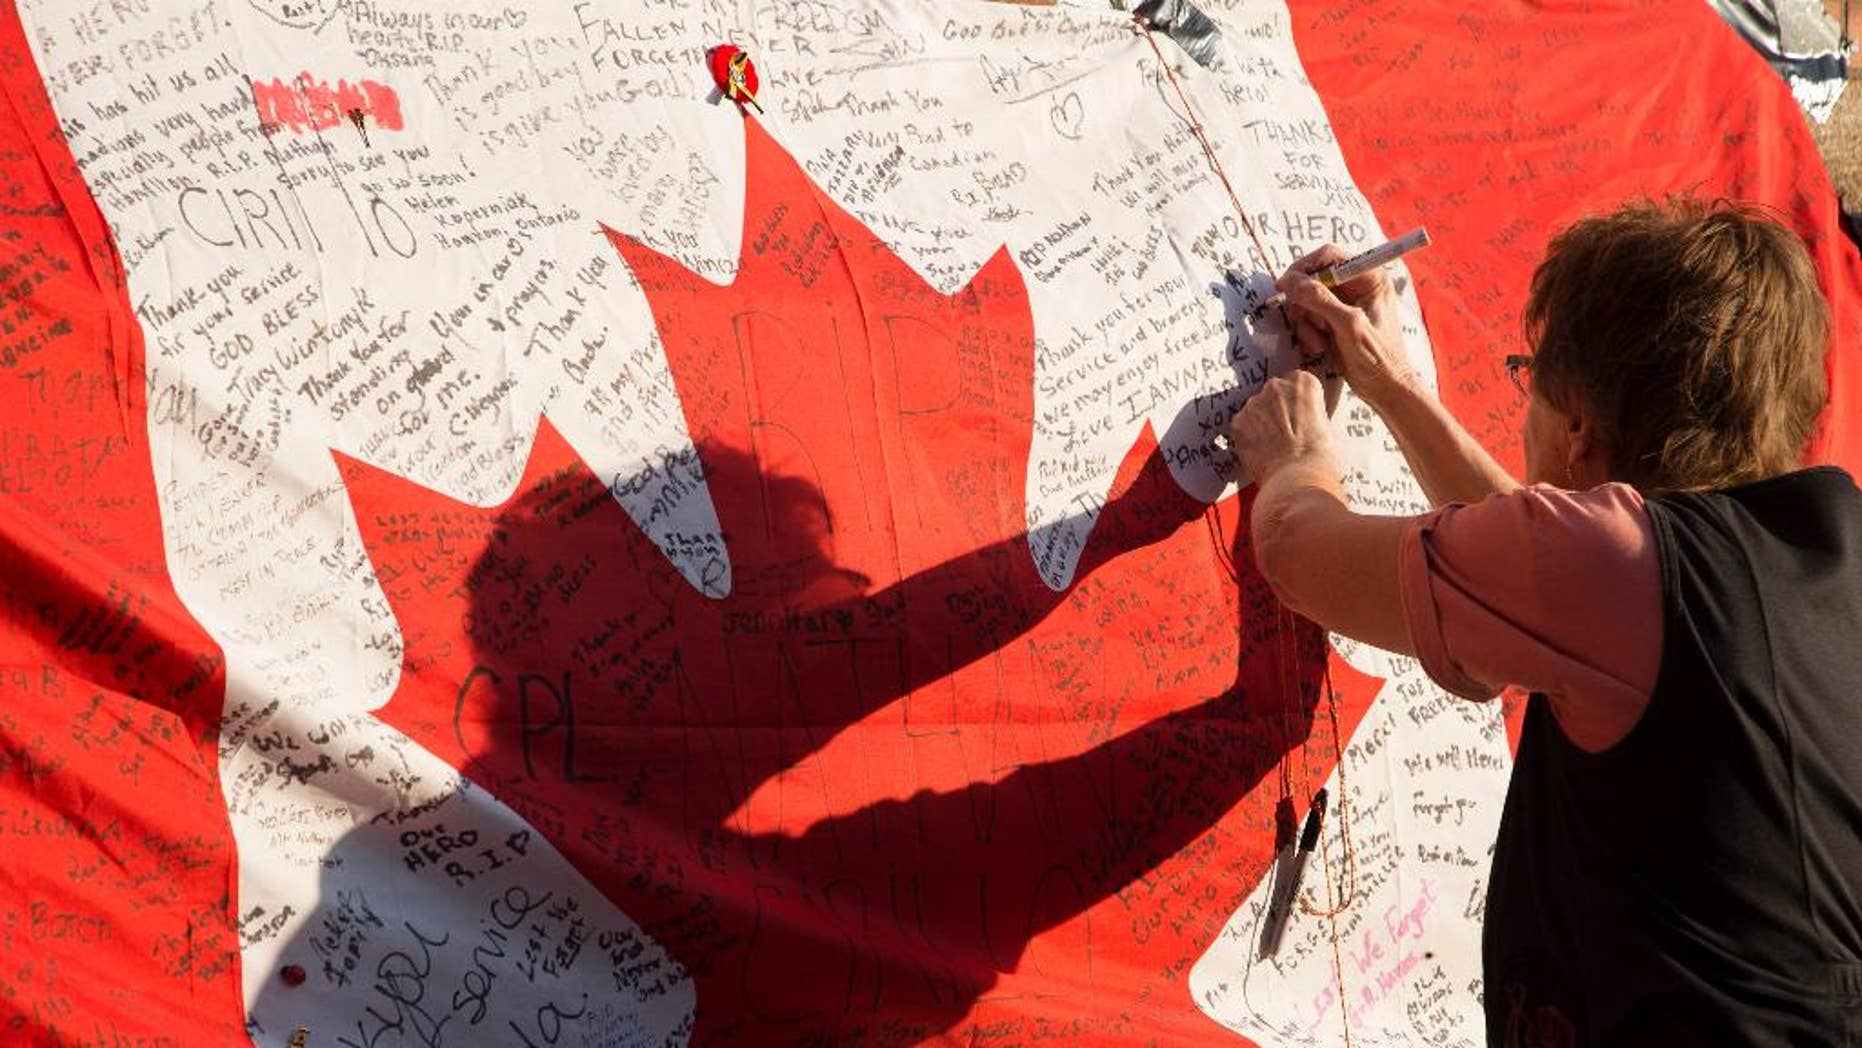 People continue to visit and build upon the memorial to Cpl Nathan Cirillo that has been growing outside of The Lieutenant-Colonel John Weir Foote Armoury in Hamilton, Ontario on Friday, Oct. 24, 2014. Cirillo, a reserve soldier with the Argyll and Sutherland Highlanders, was killed by an armed gunman on Parliament Hill early on Wednesday morning. (AP Photo/The Canadian Press, Peter Power)